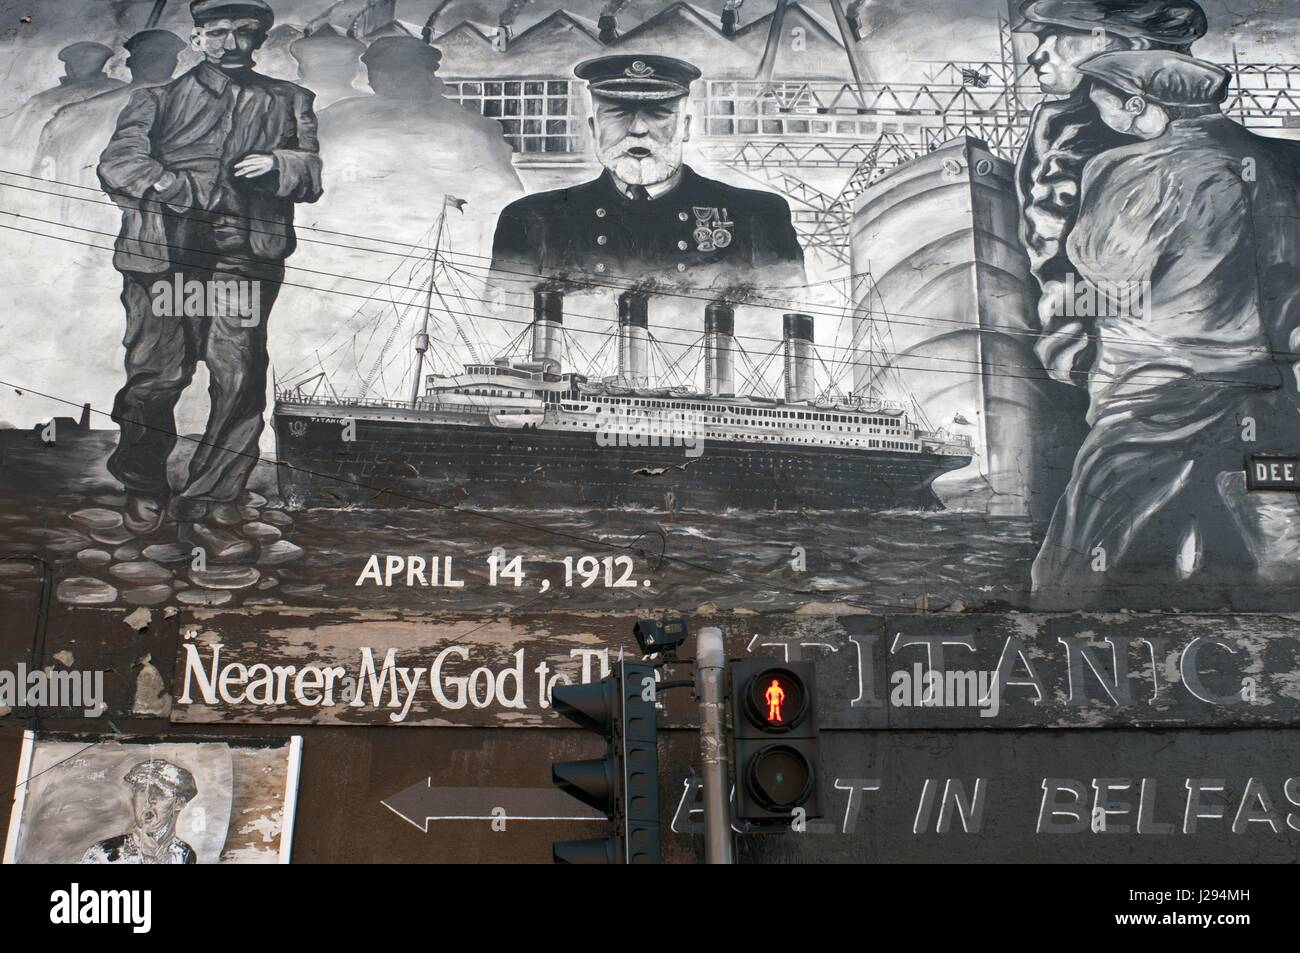 political wall murals belfast north stock photos political wall titanic wall mural dee street belfast northern ireland uk this wall